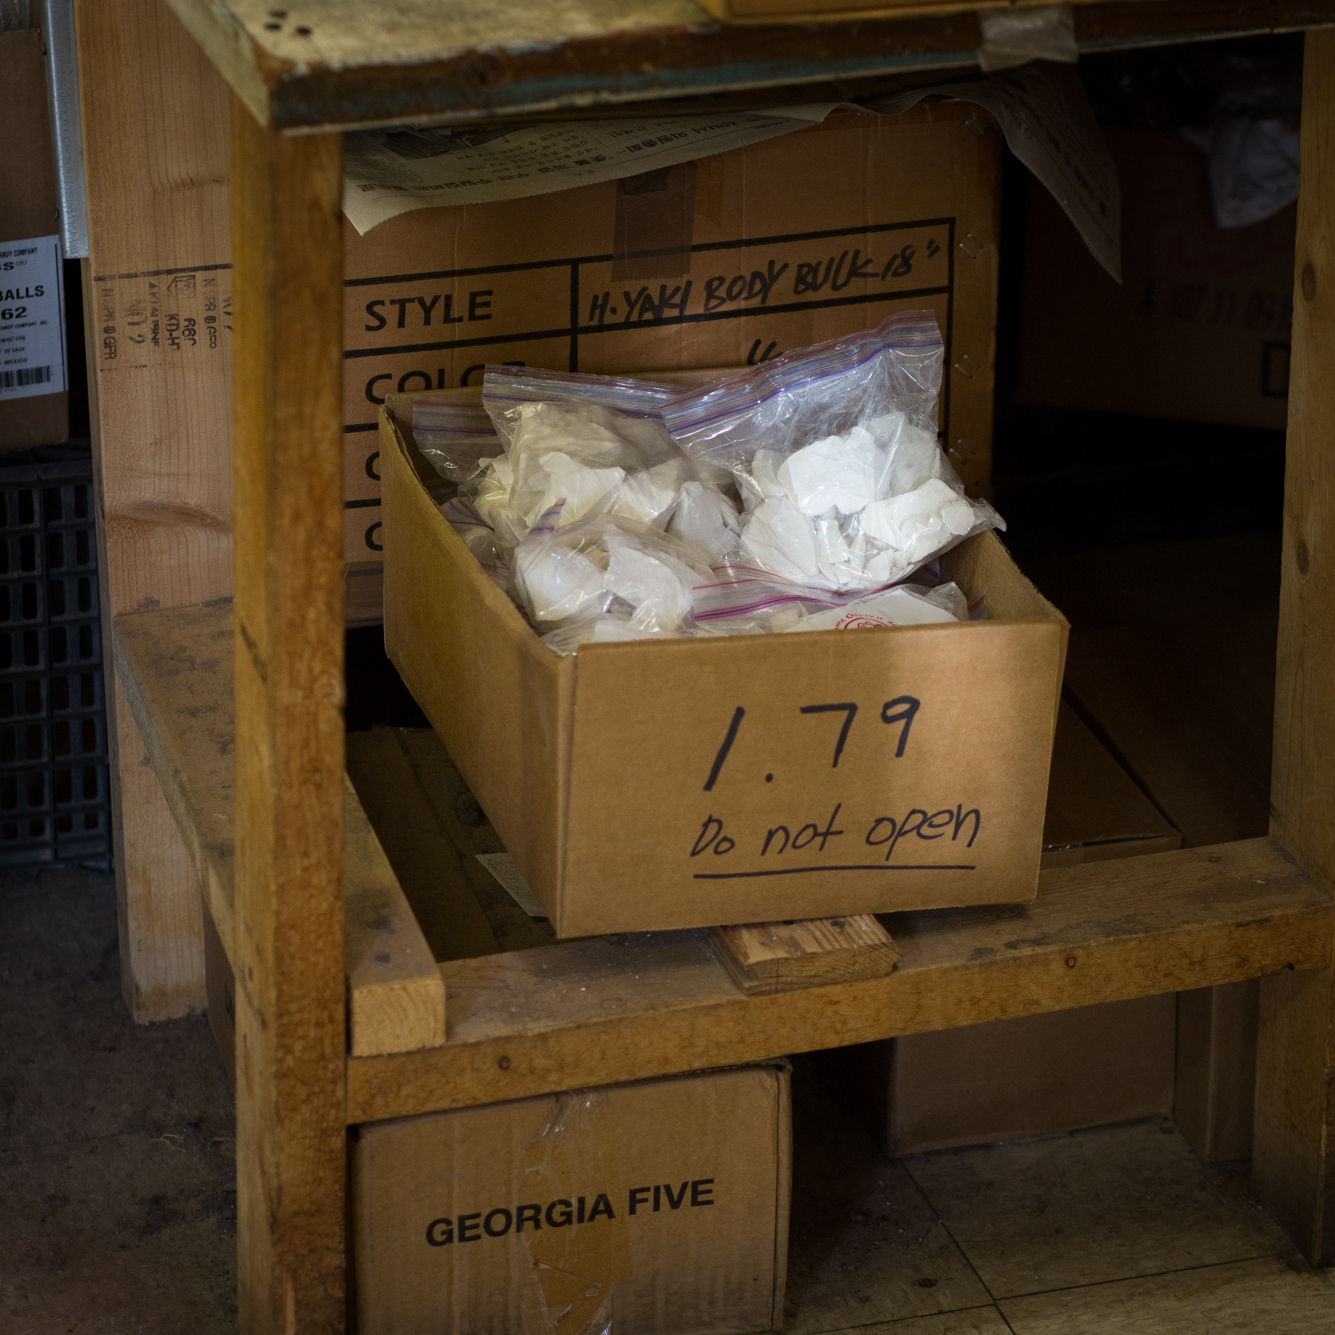 A box of packaged white dirt on sale at MLK Market in Greensboro, Ga.